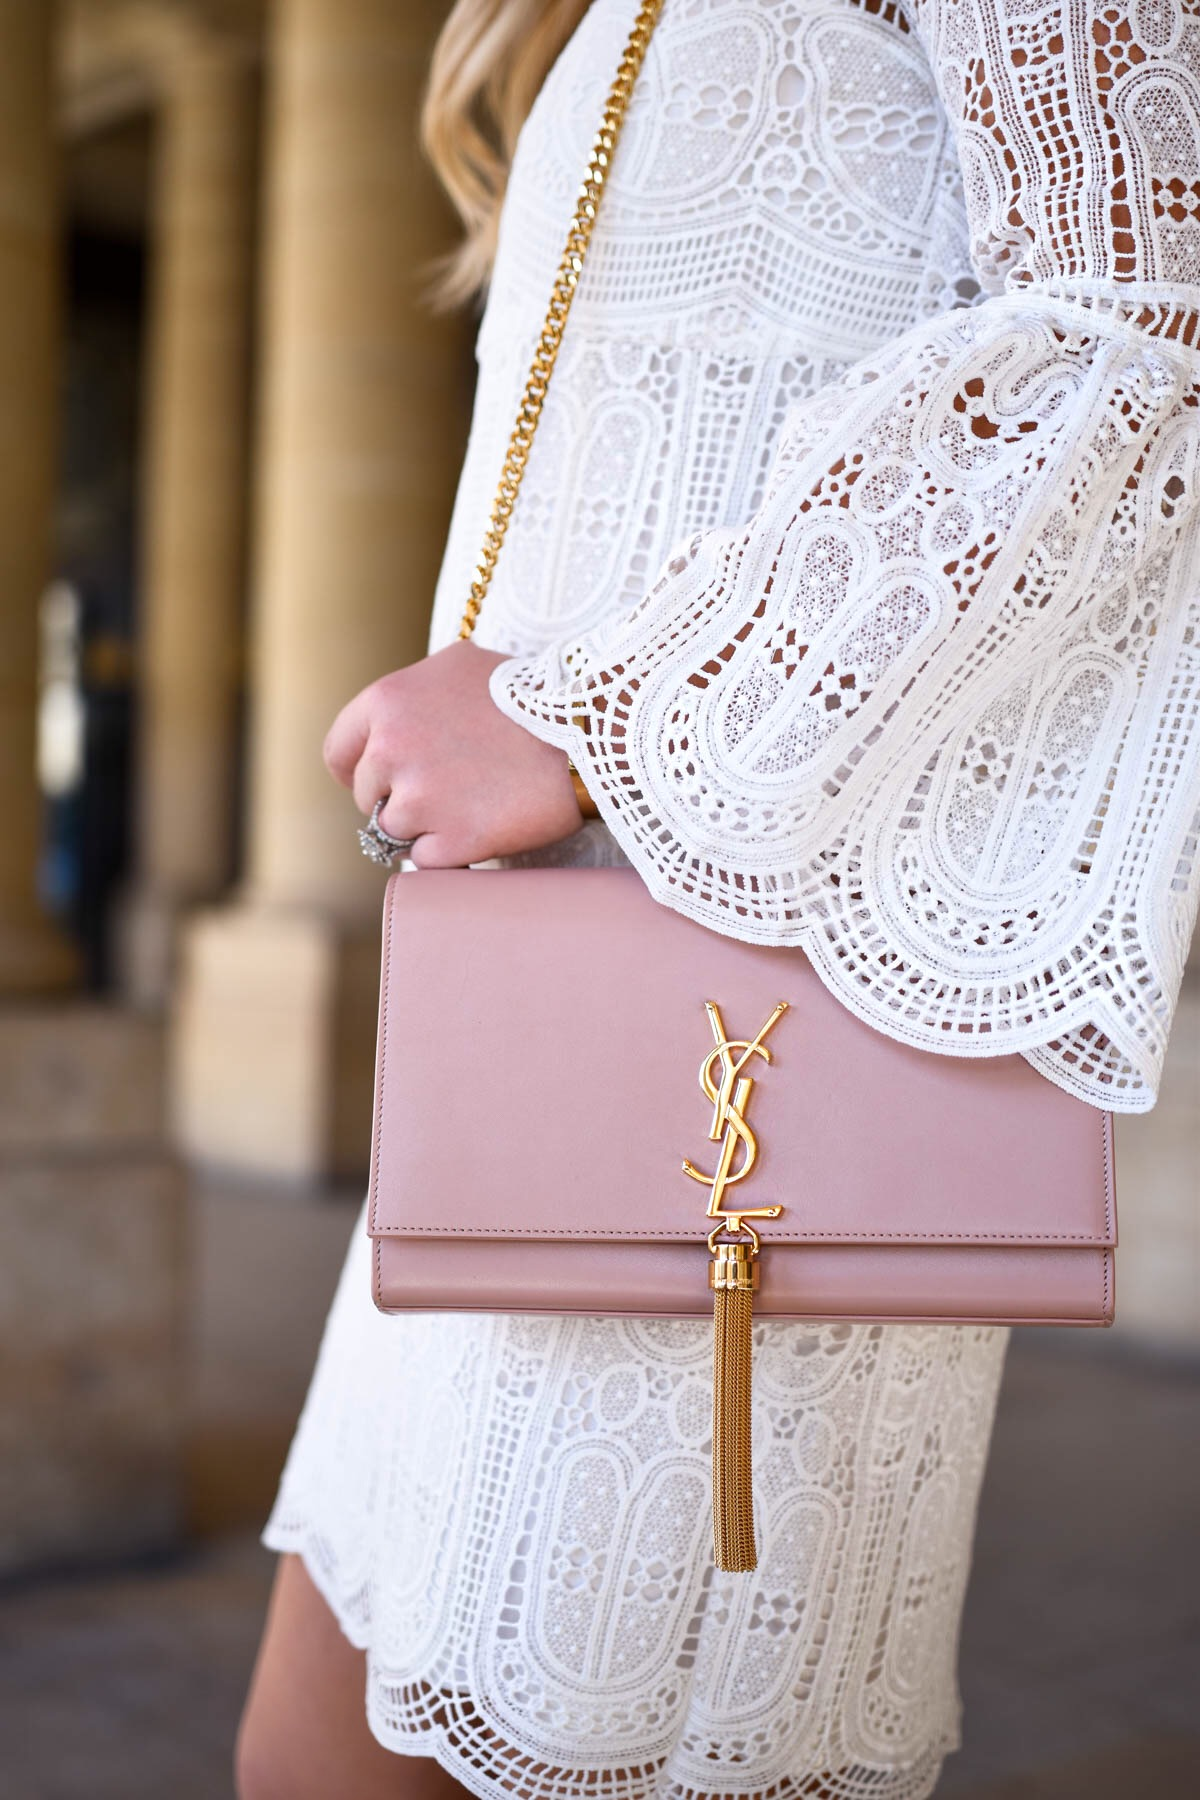 White-Lace-Dress, Bell-Sleeve-Dress, YSL-Handbag, Saint-Laurent-Handbag, Tassel-Bag, Chicwish-Dress